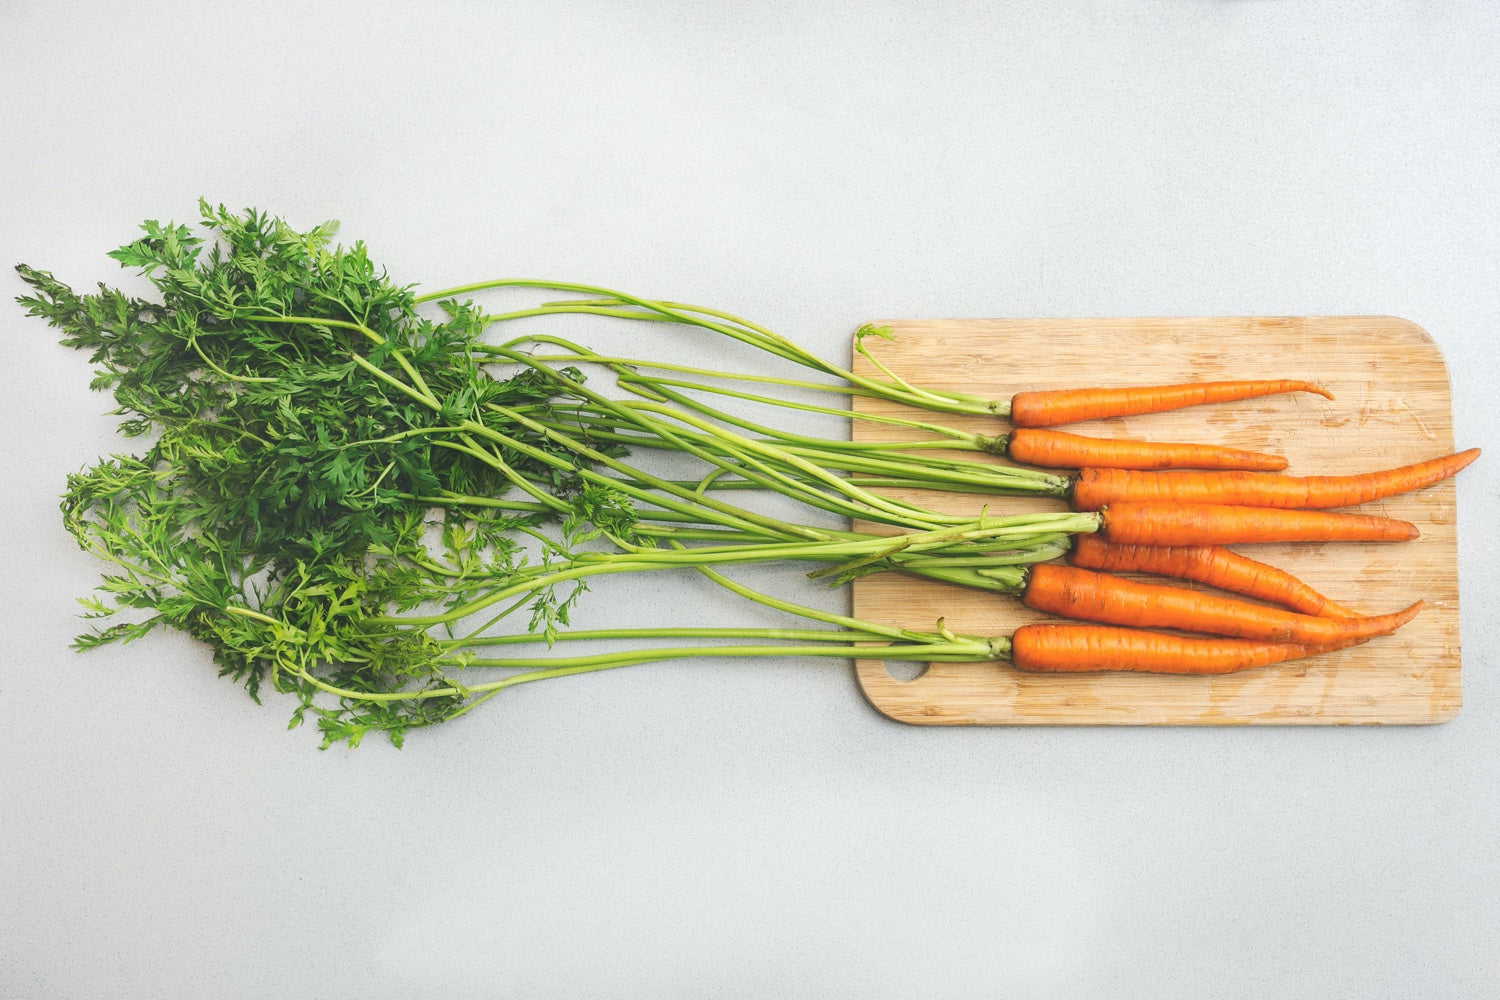 A bunch of garden carrots on top of a wood cutting board